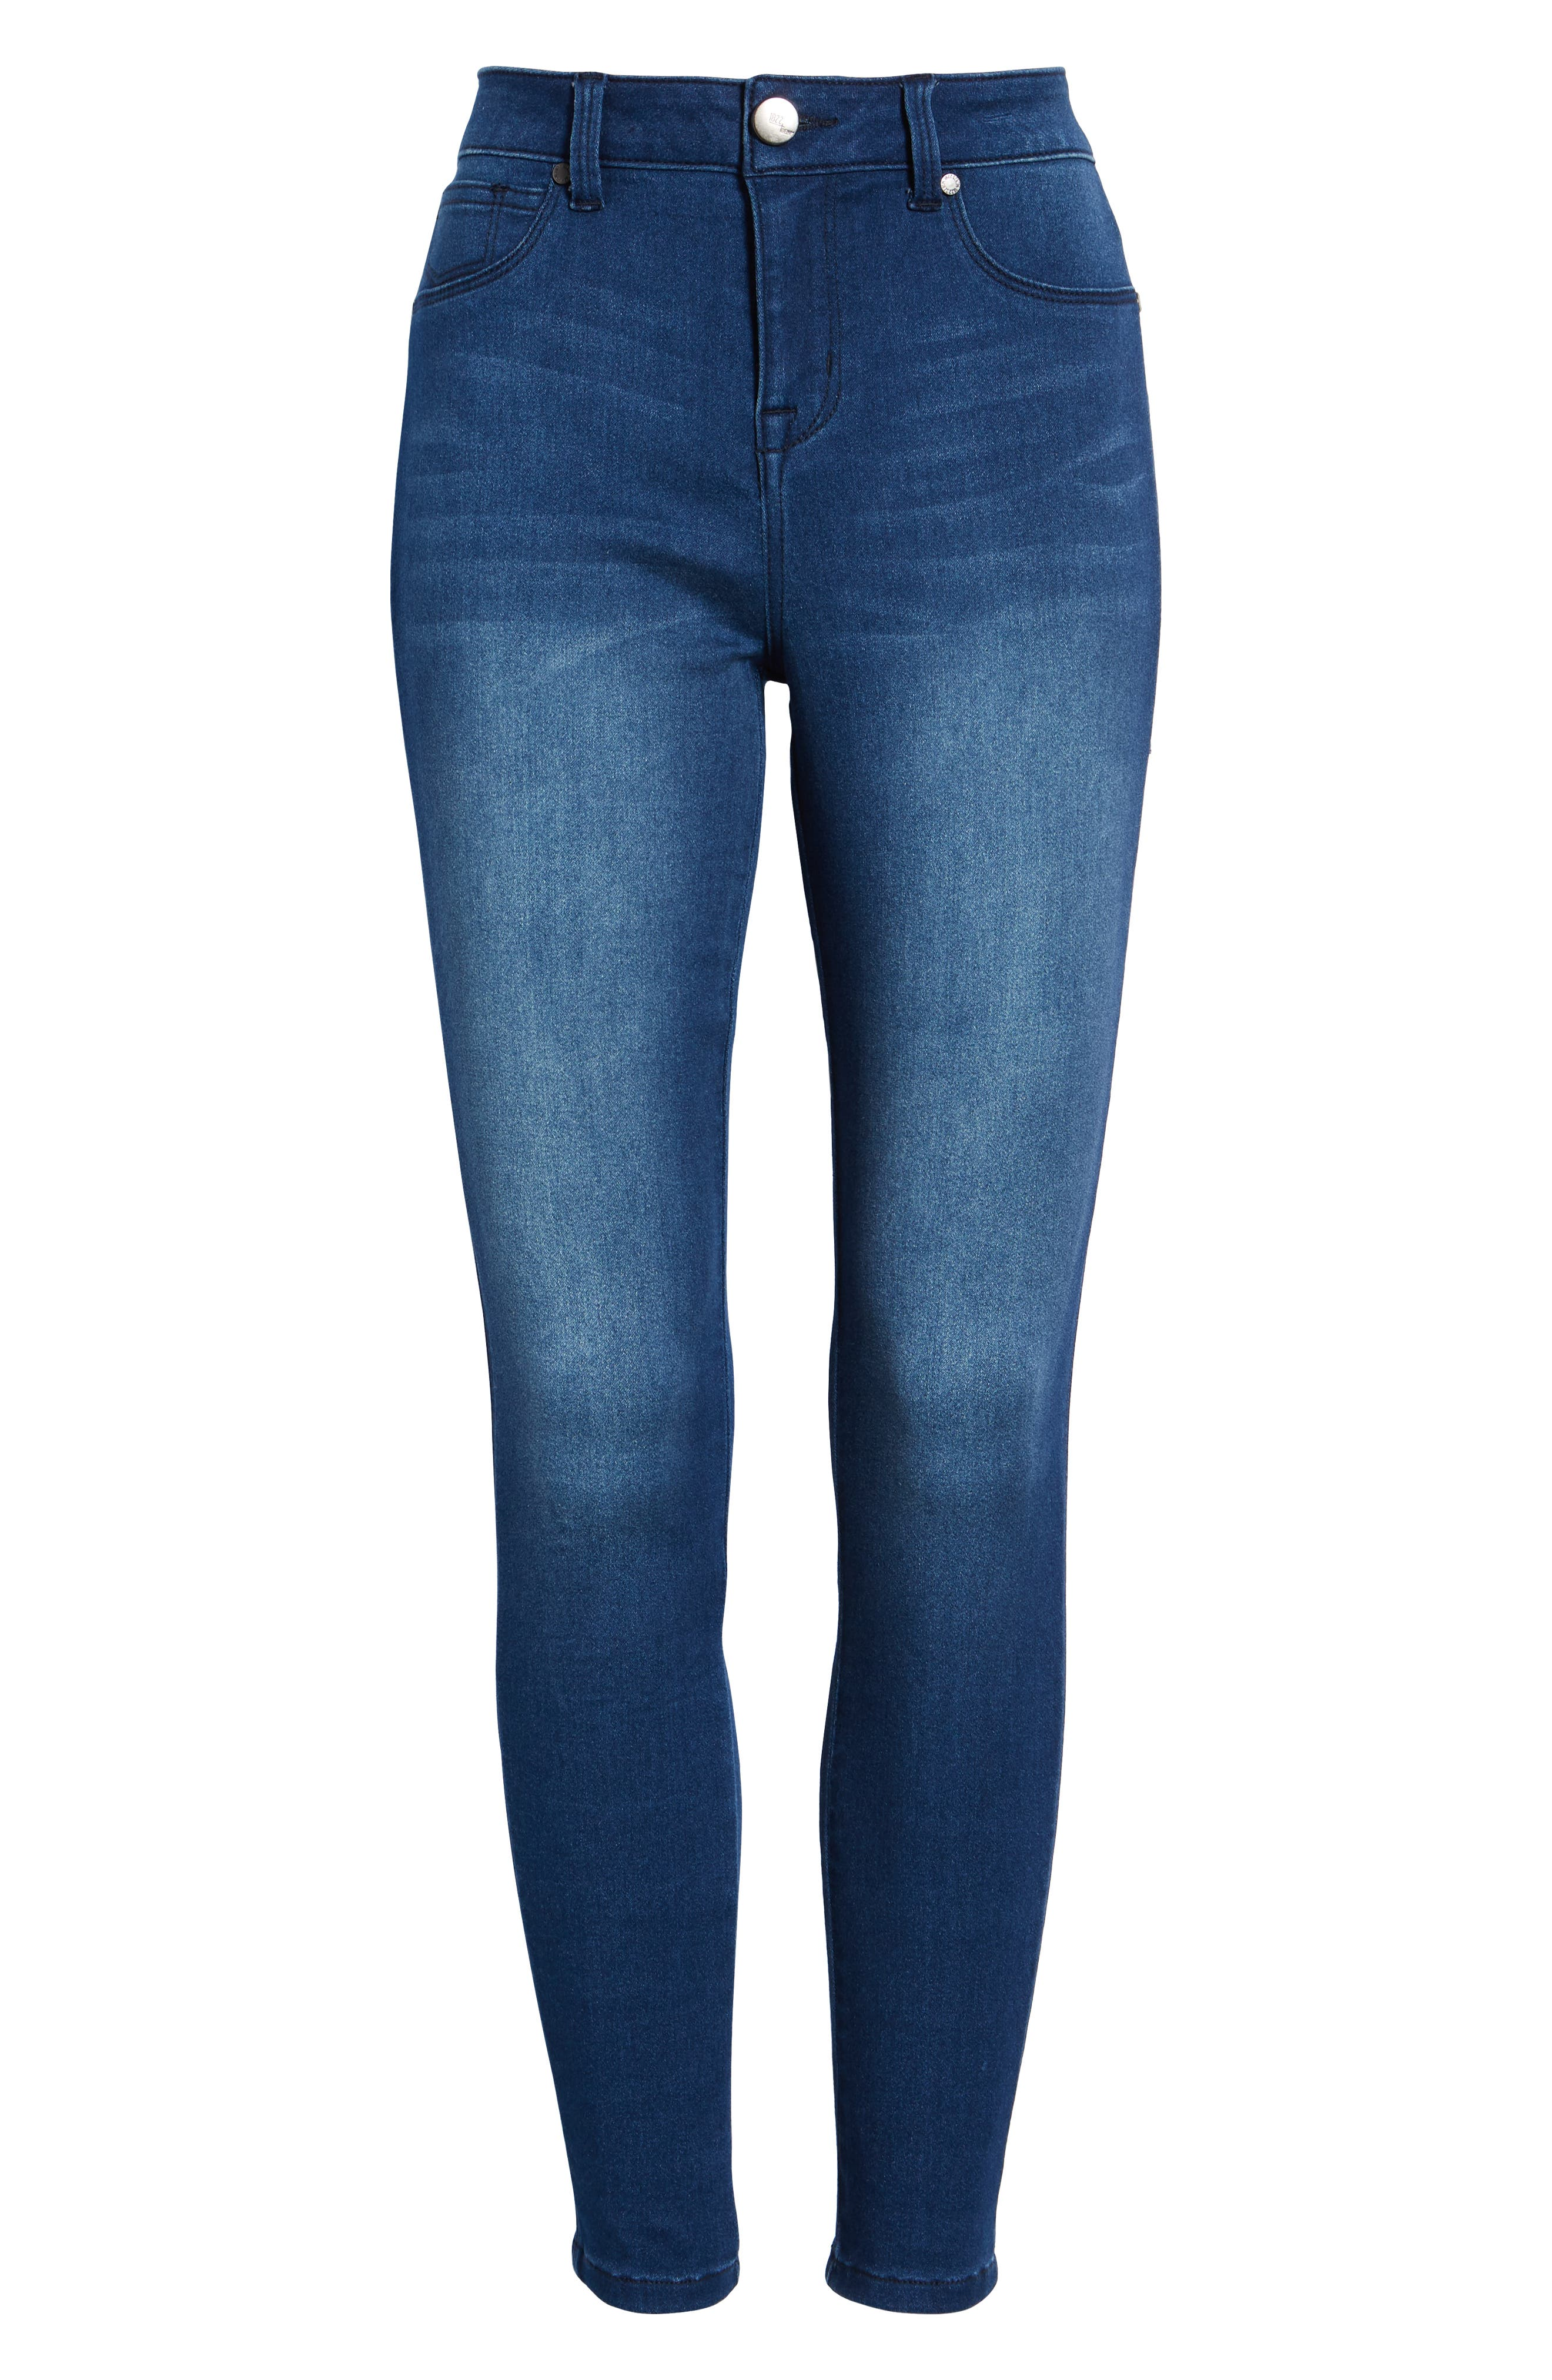 Butter High Waist Skinny Ankle Jeans,                             Alternate thumbnail 7, color,                             DONNA